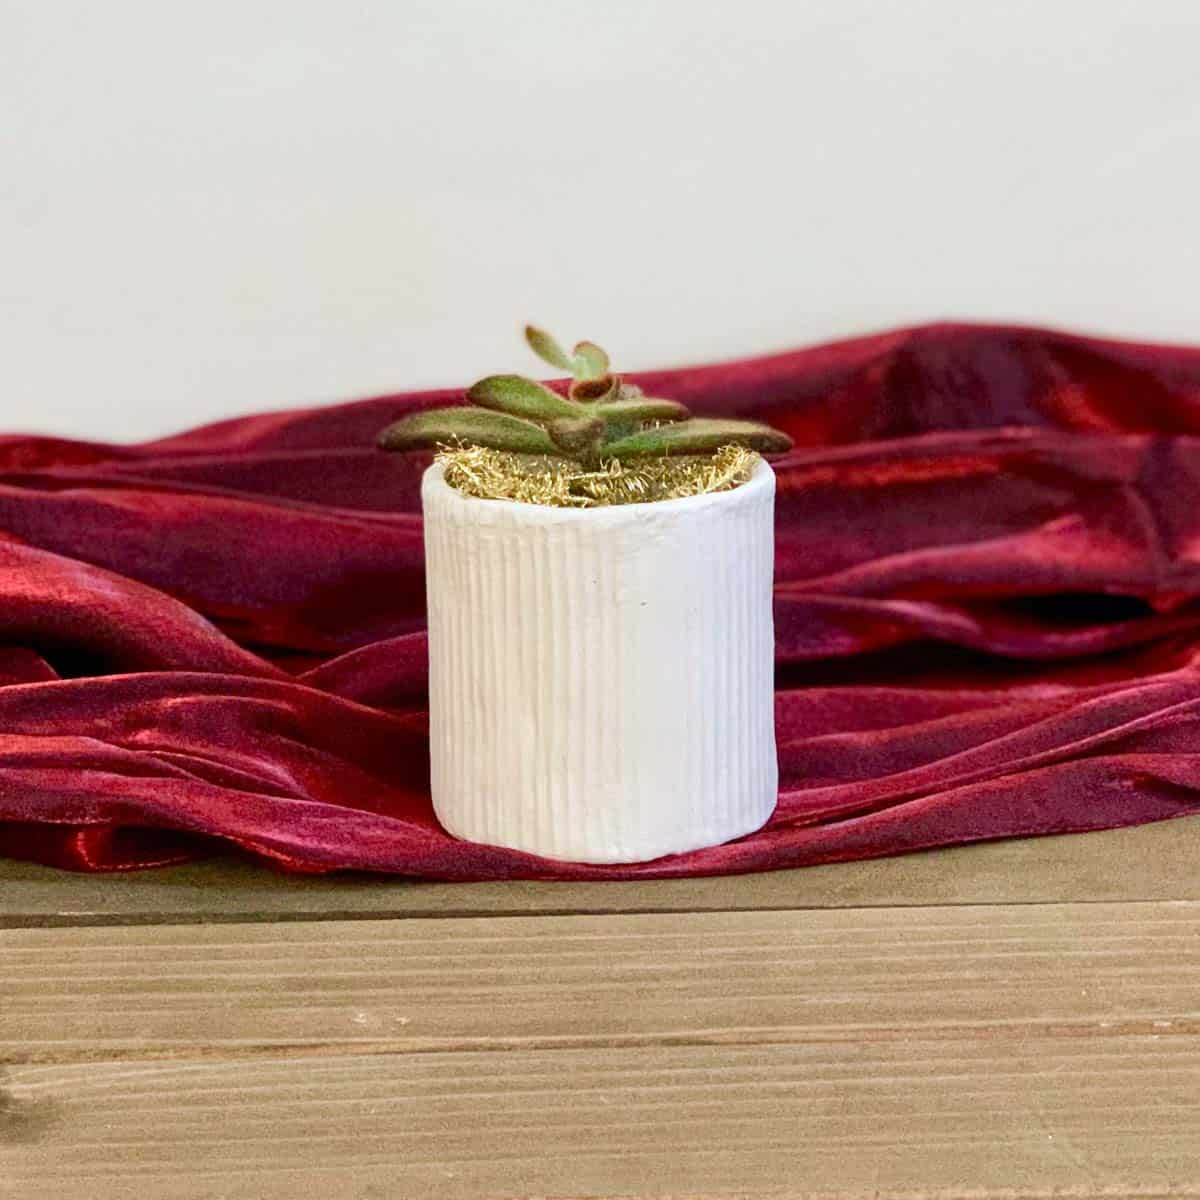 Air dry clay planter on red material